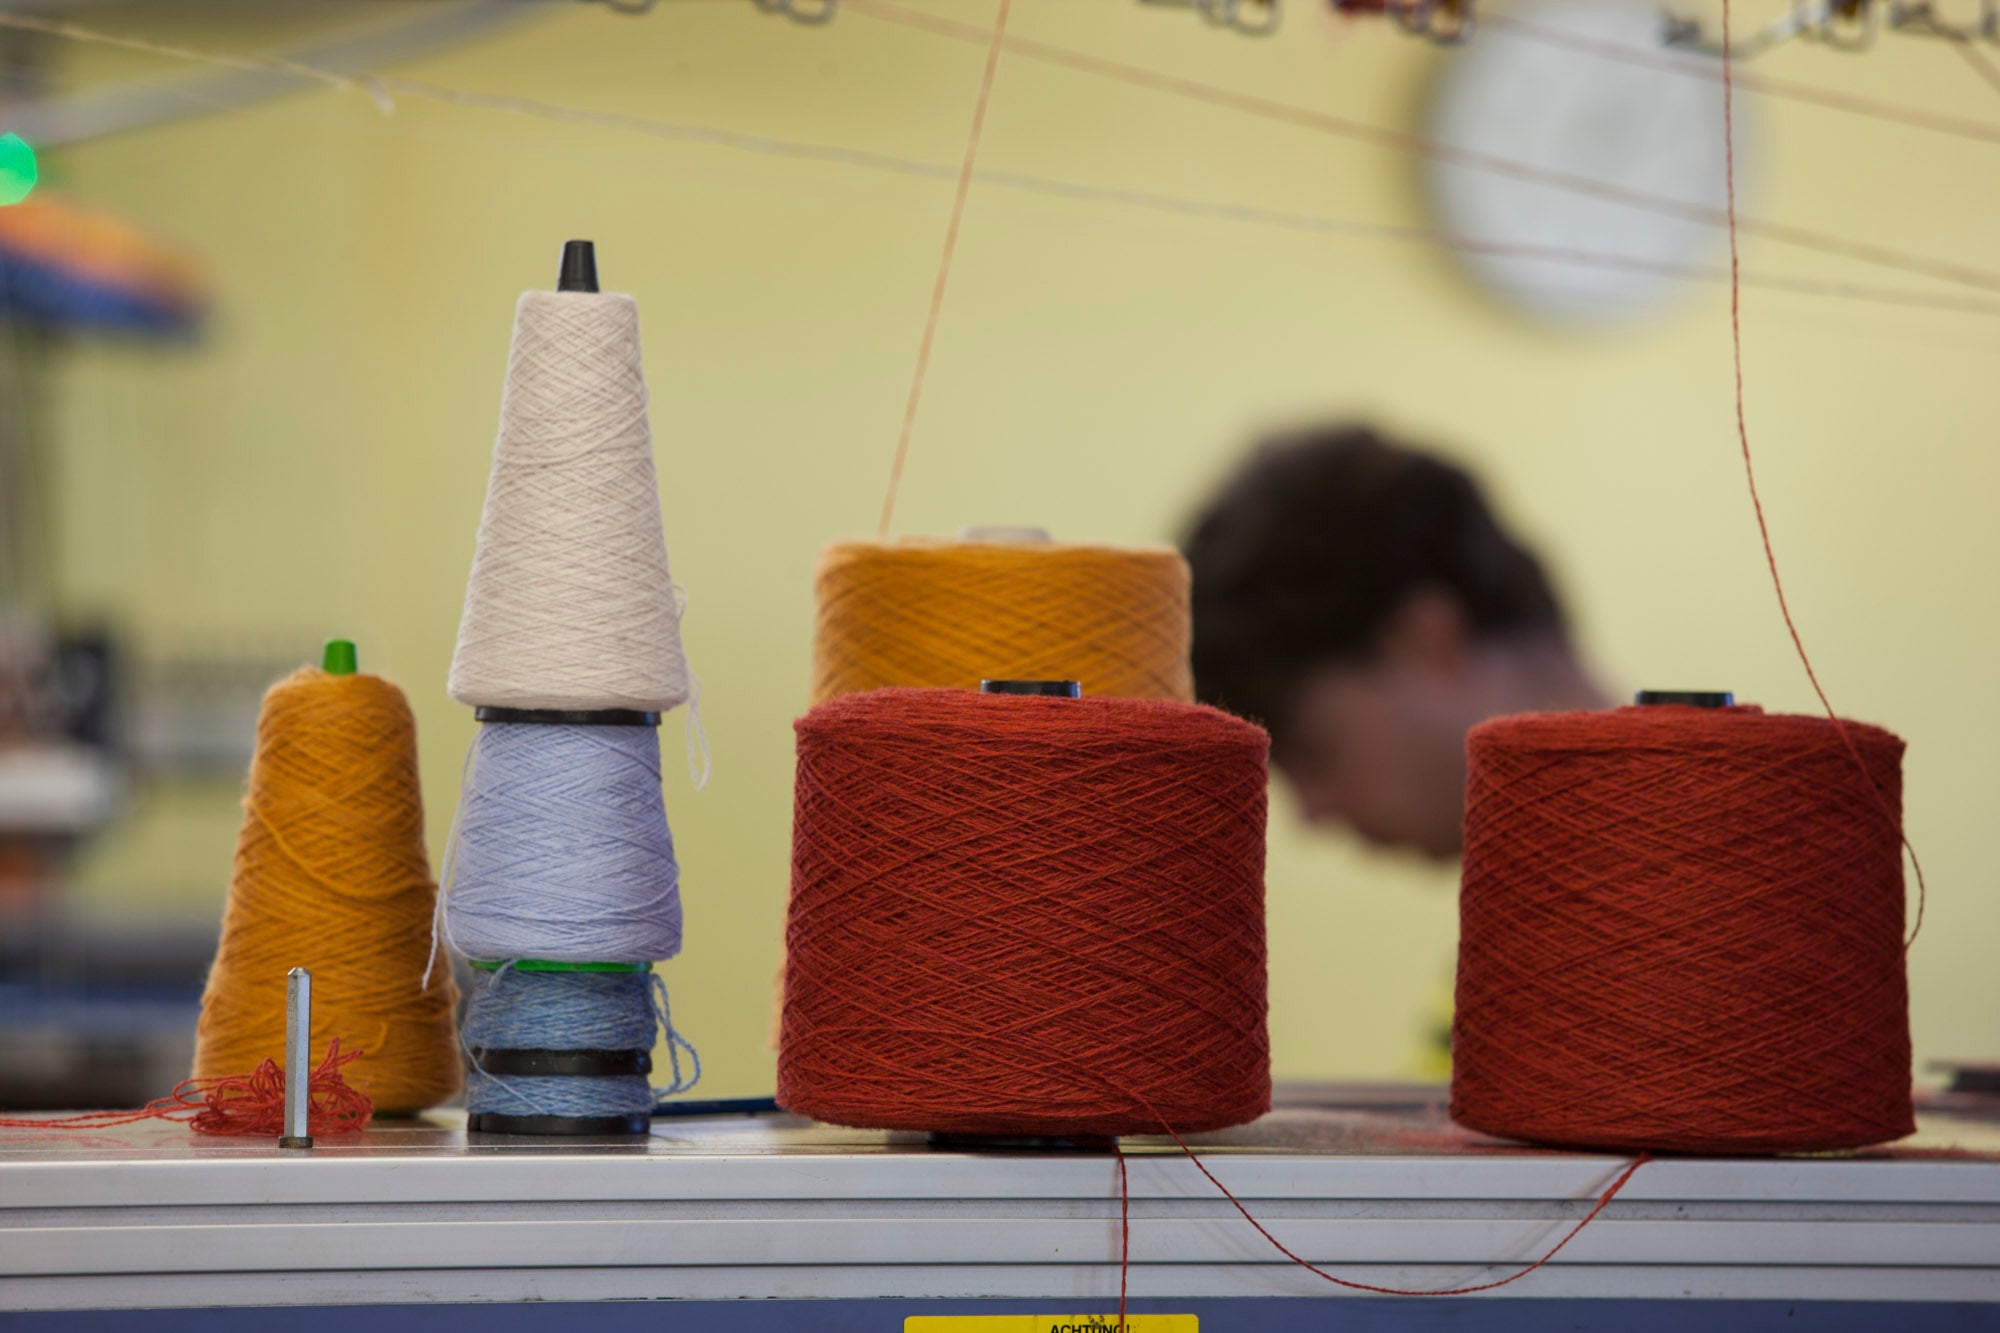 In the knit room at Laurence Odie, Hoswick, Shetland. Cones of red, orange, blue, and cream yarn on top of a knitting machine, with a technician in the background